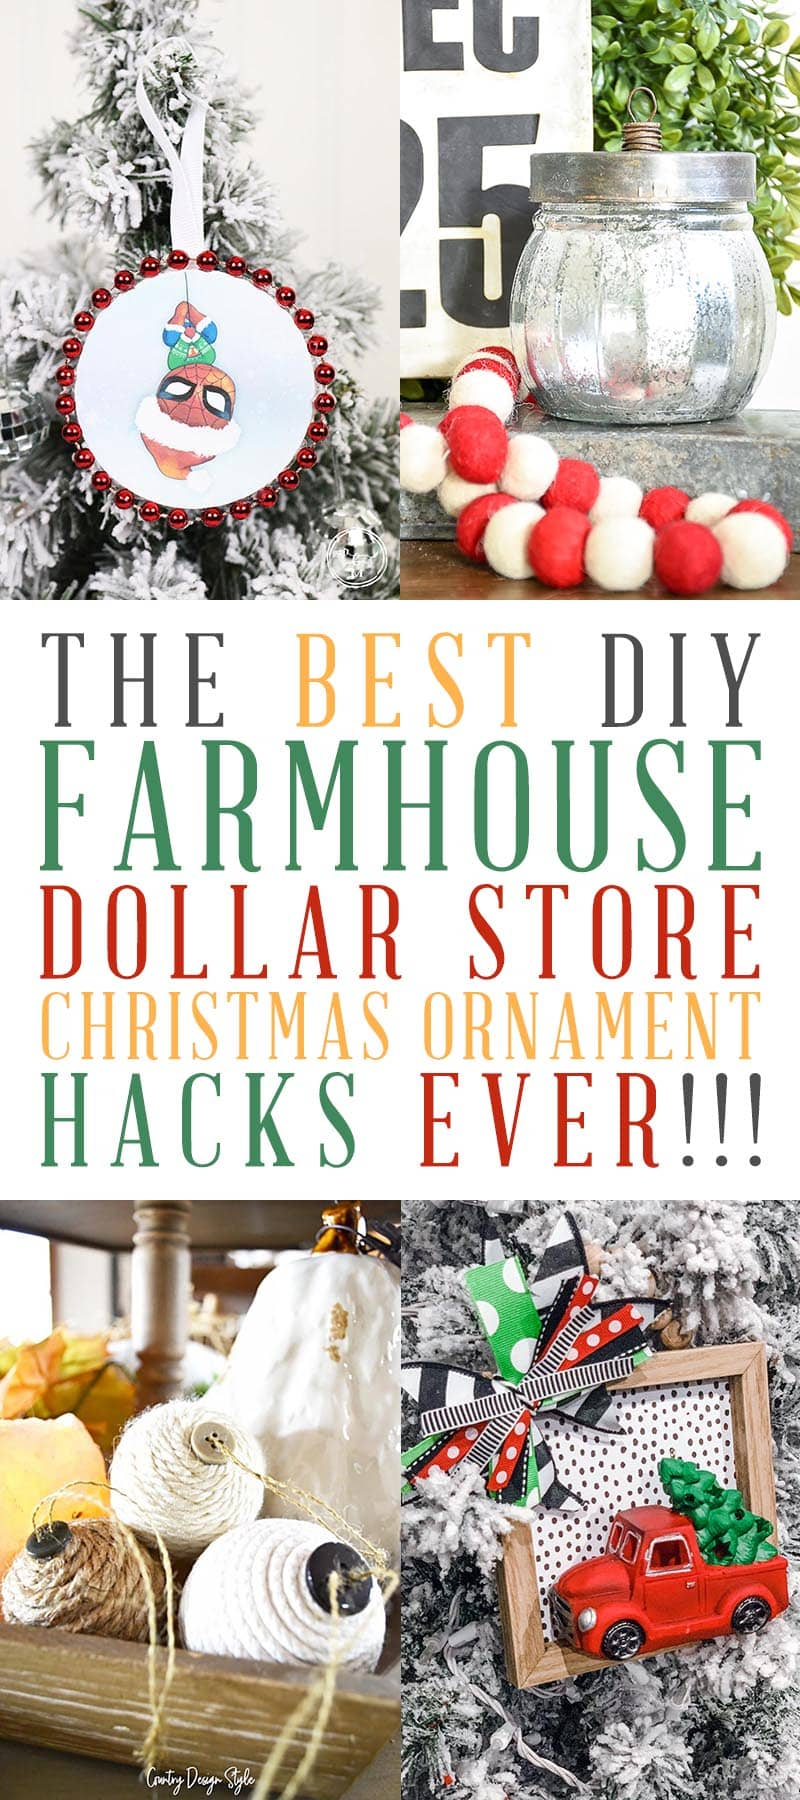 Dollar Store Christmas Ornament DIY T 1